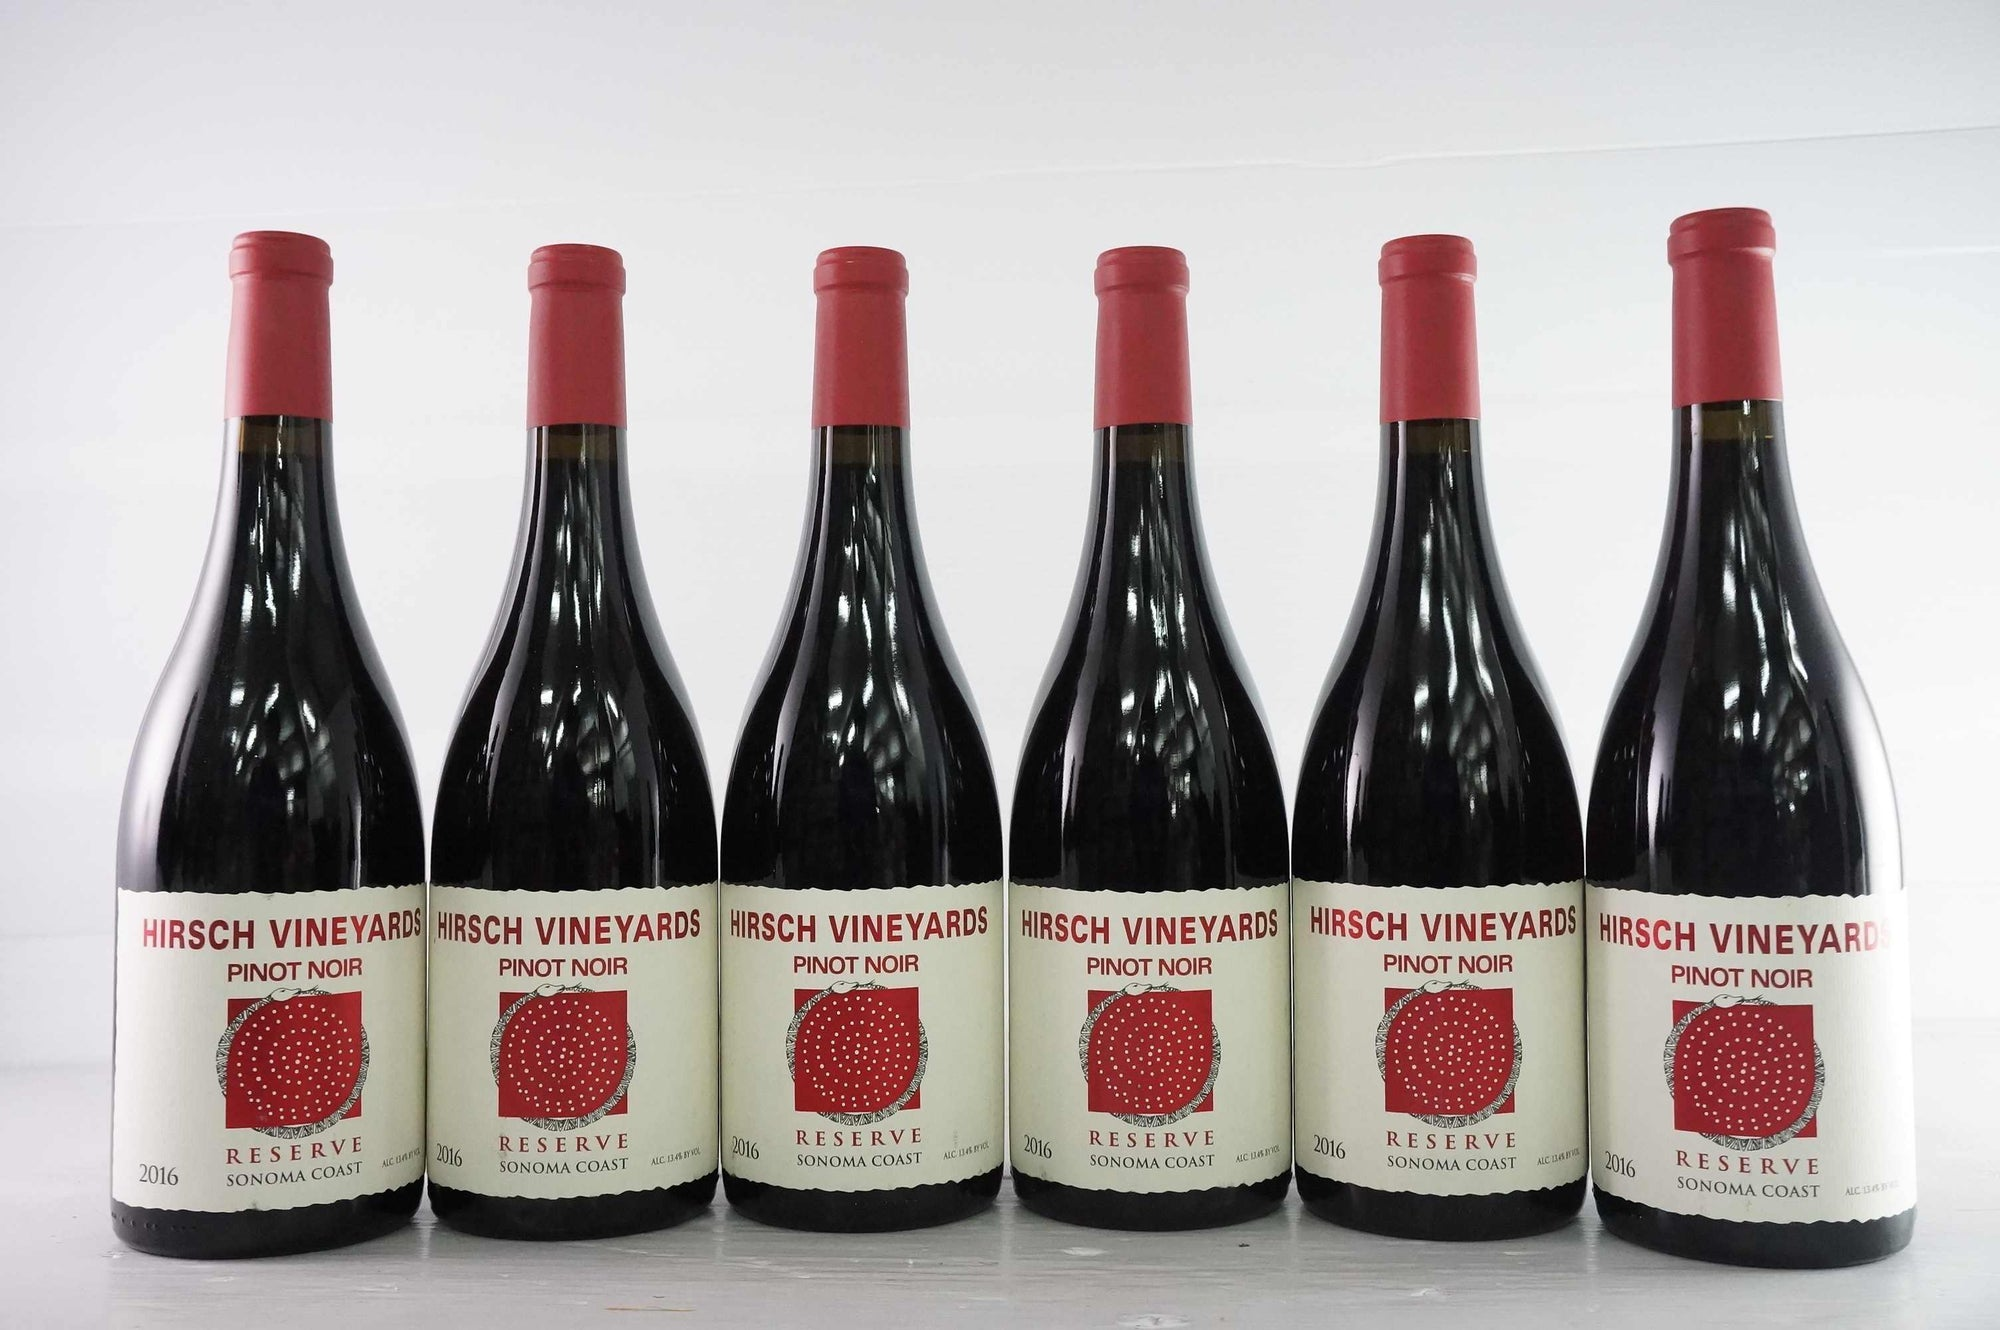 Hirsch Vineyards Sonoma Coast Pinot Noir Reserve 2016